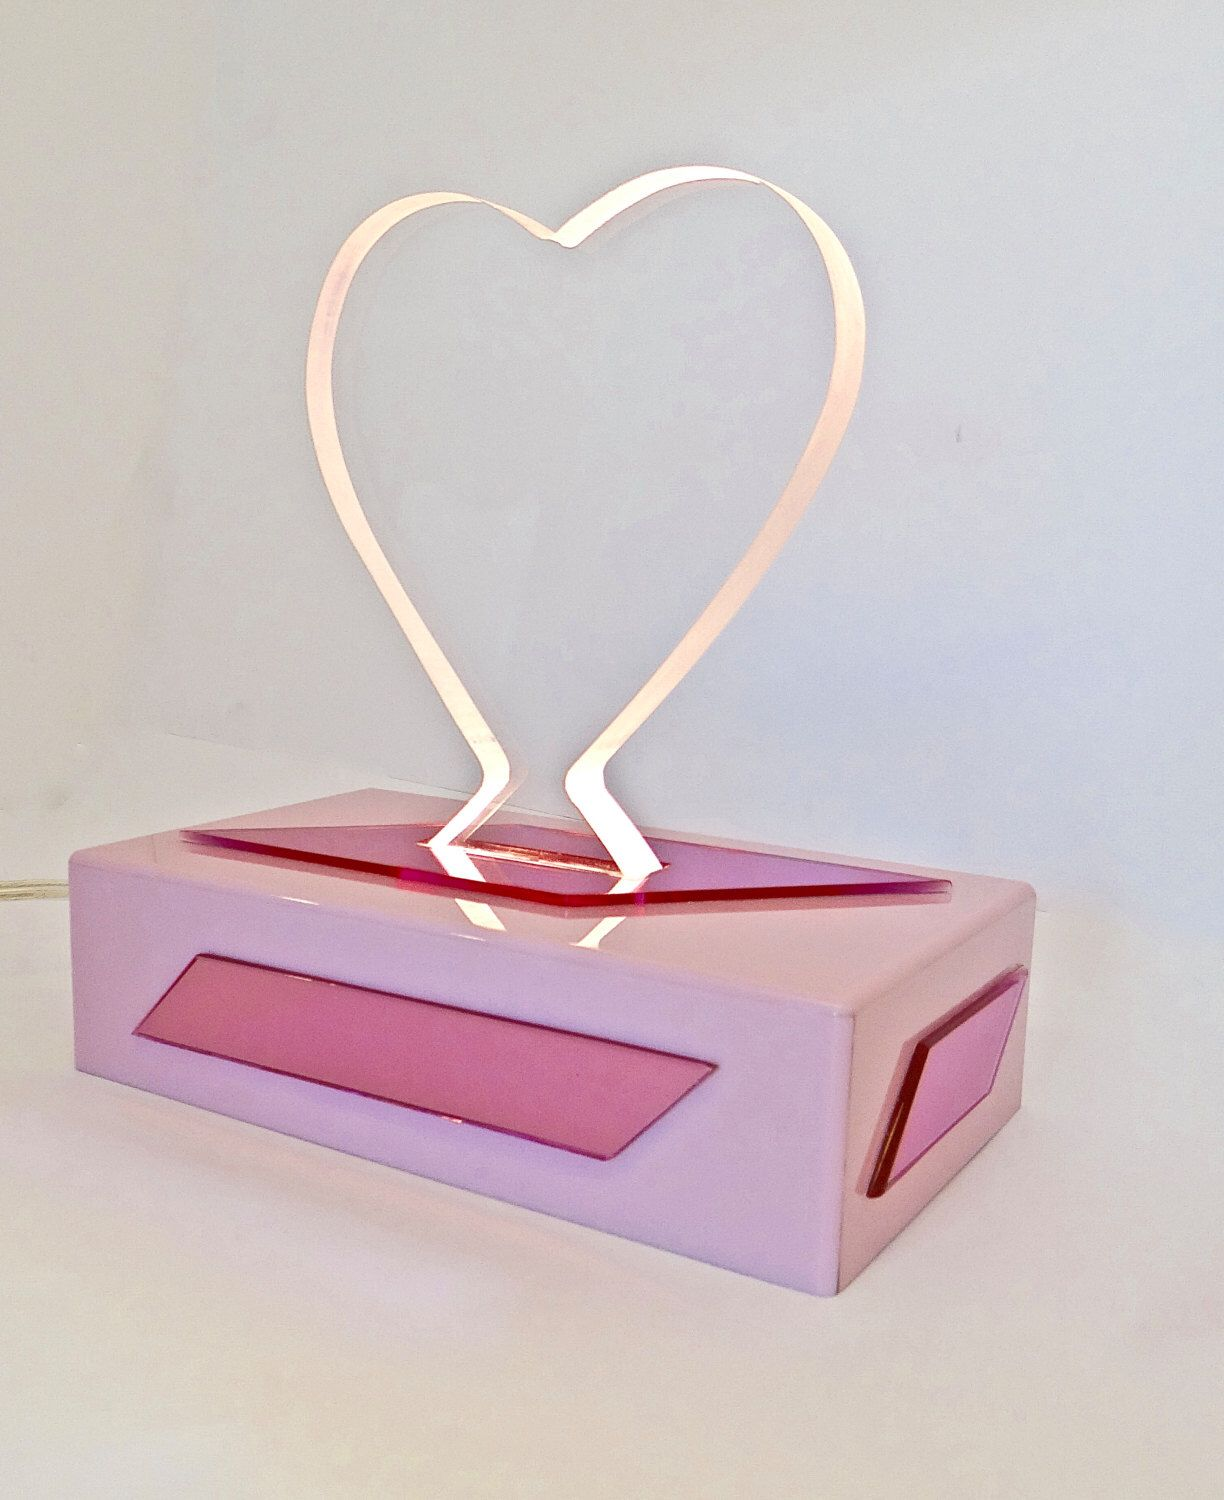 Lucite/Acrylic Heart Shaped Mirrored Accent Nightlight by JoNaiDesigns on Etsy https://www.etsy.com/listing/467056244/luciteacrylic-heart-shaped-mirrored